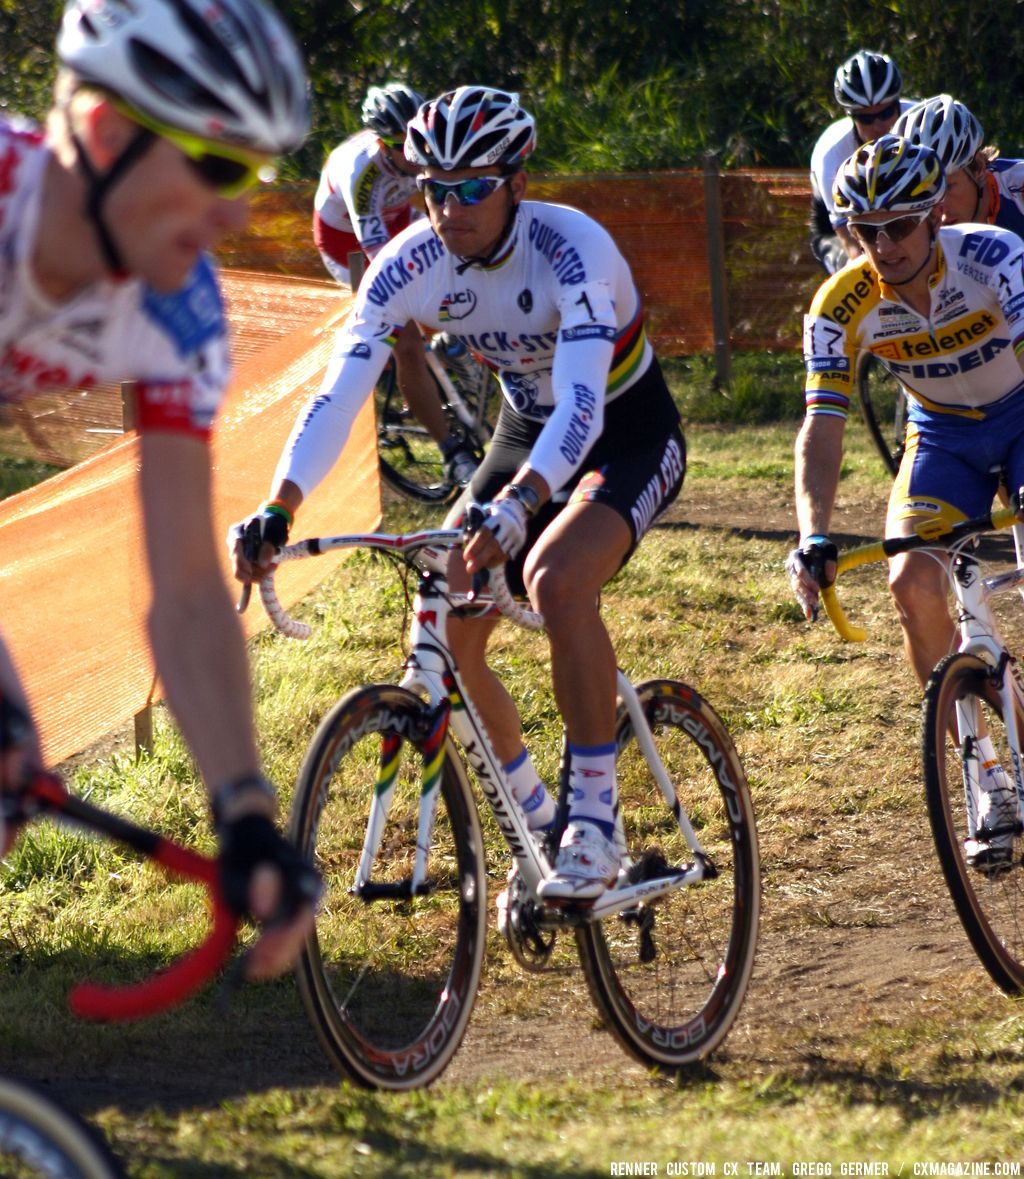 Stybar was an animator early in the race. © Renner Custom CX Team, Gregg Germer